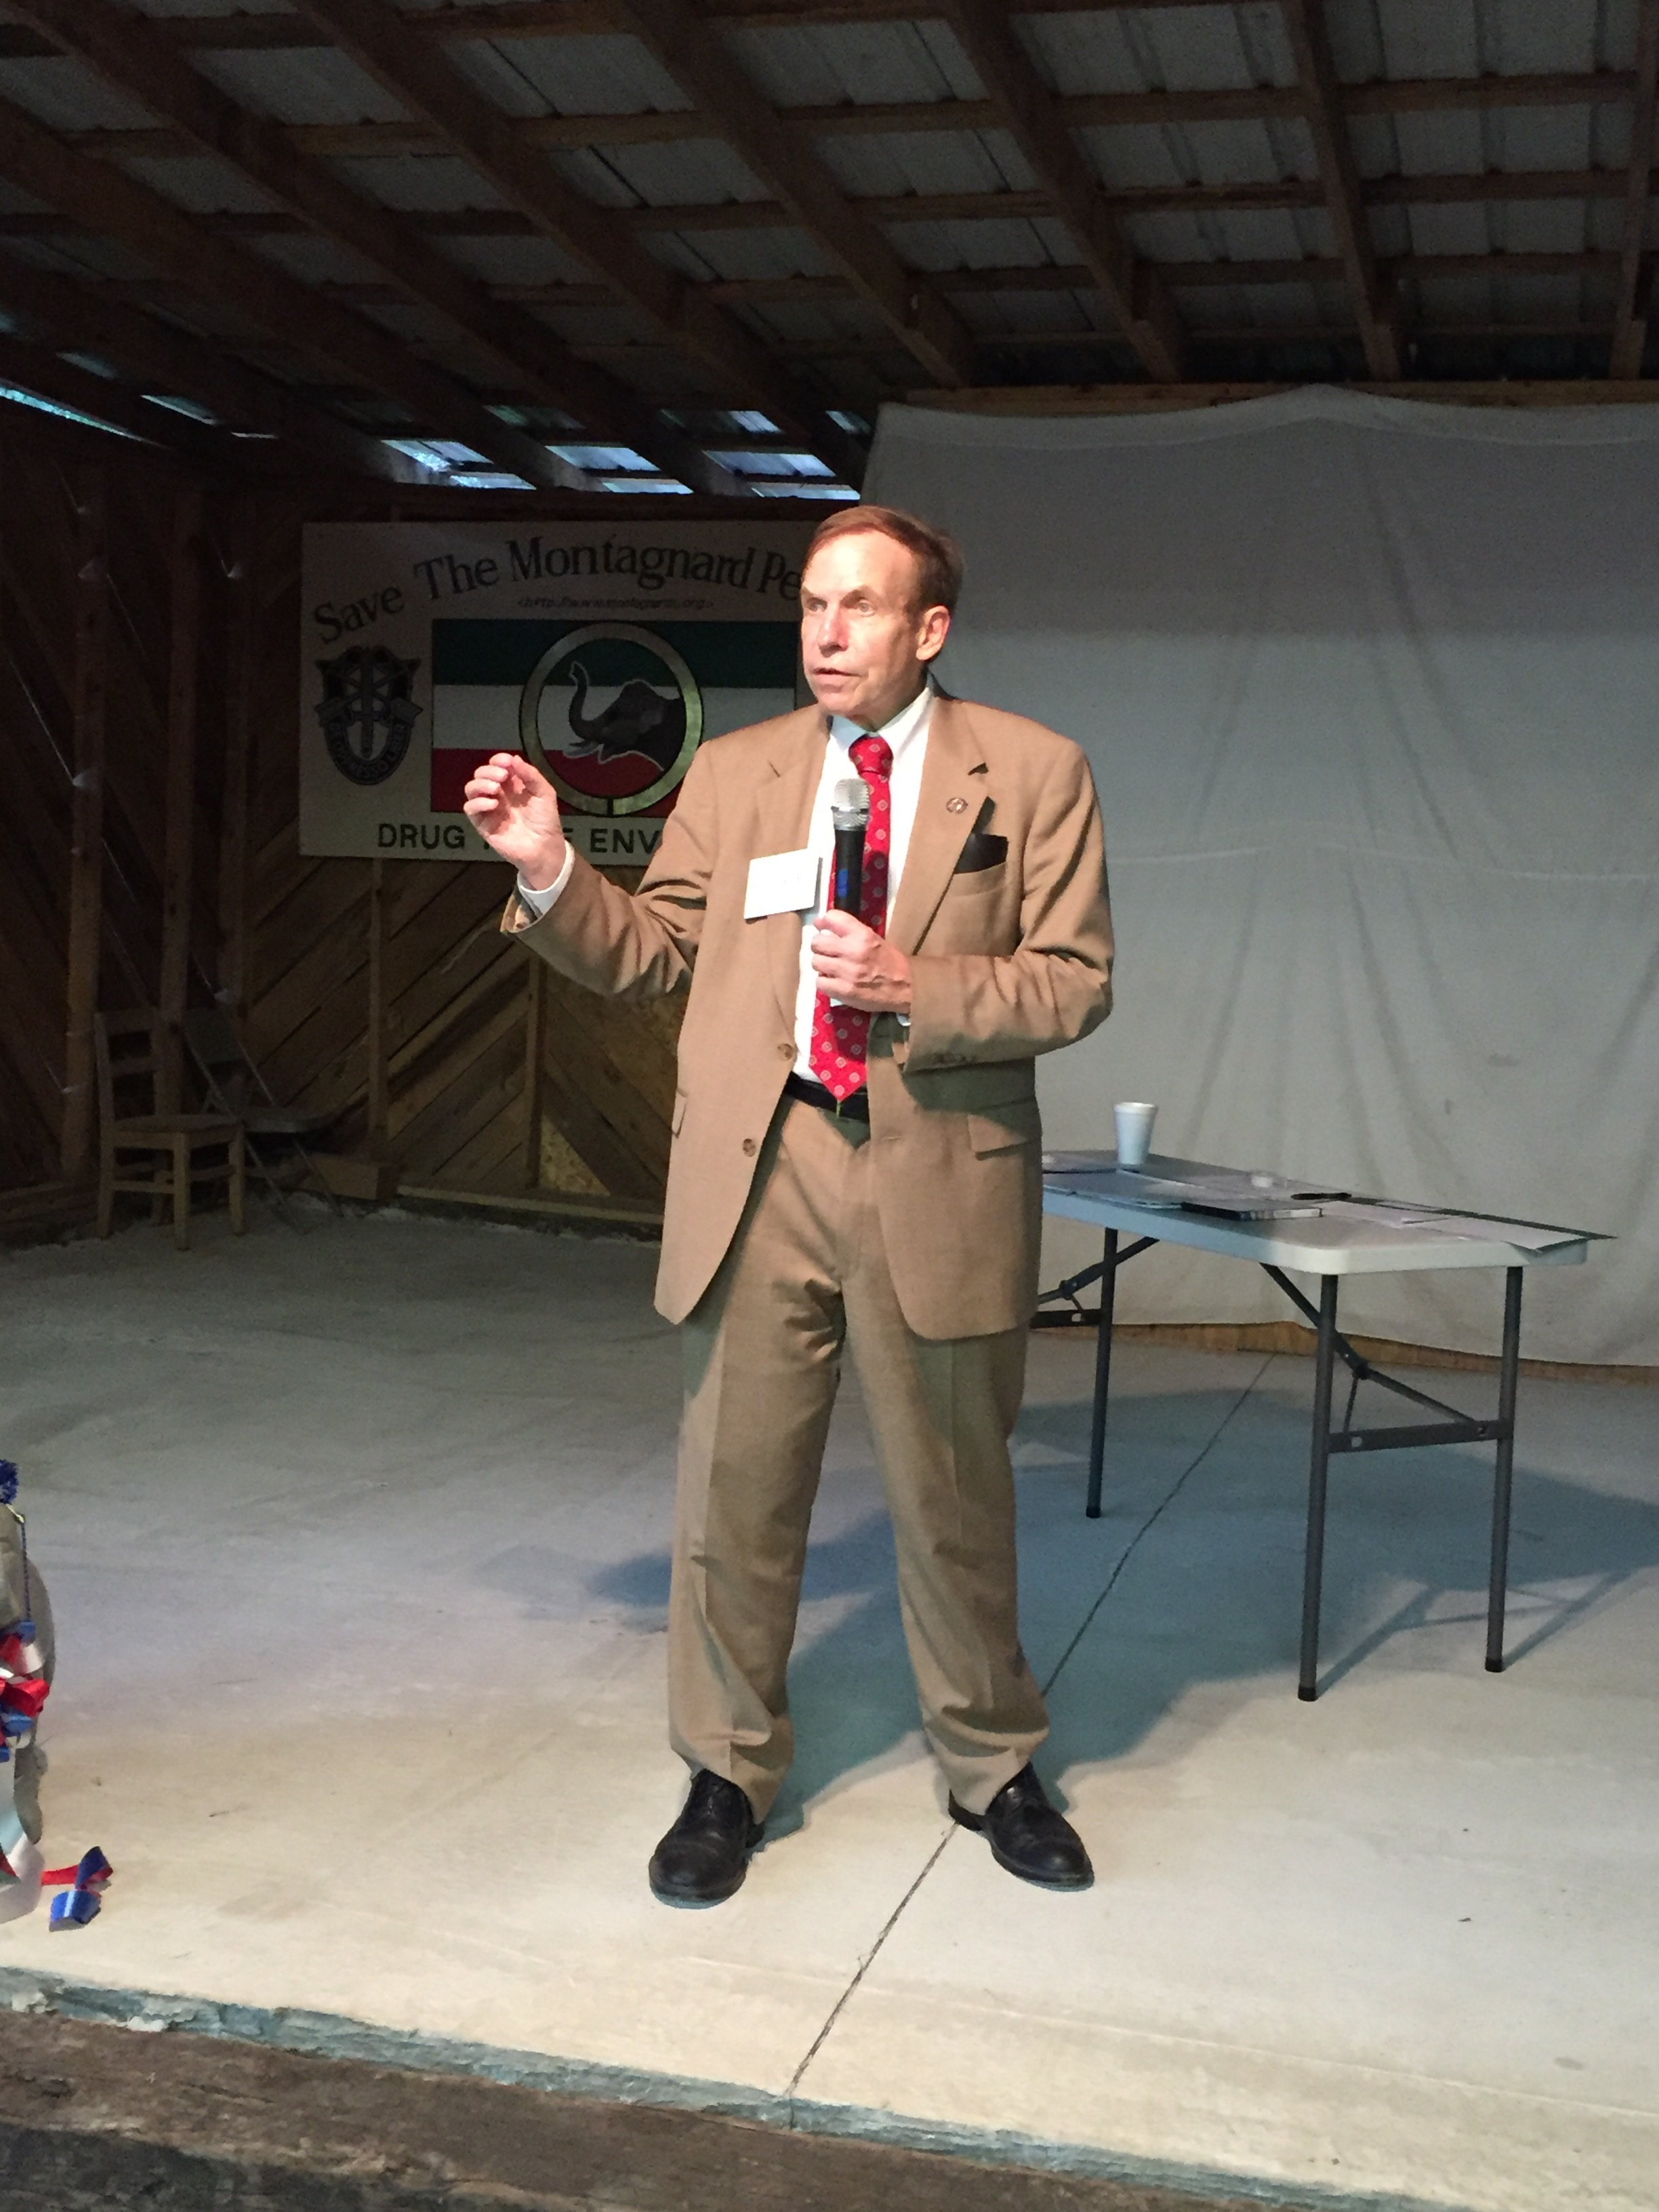 Speaking to voters in Randolph County, August 27, 2016.